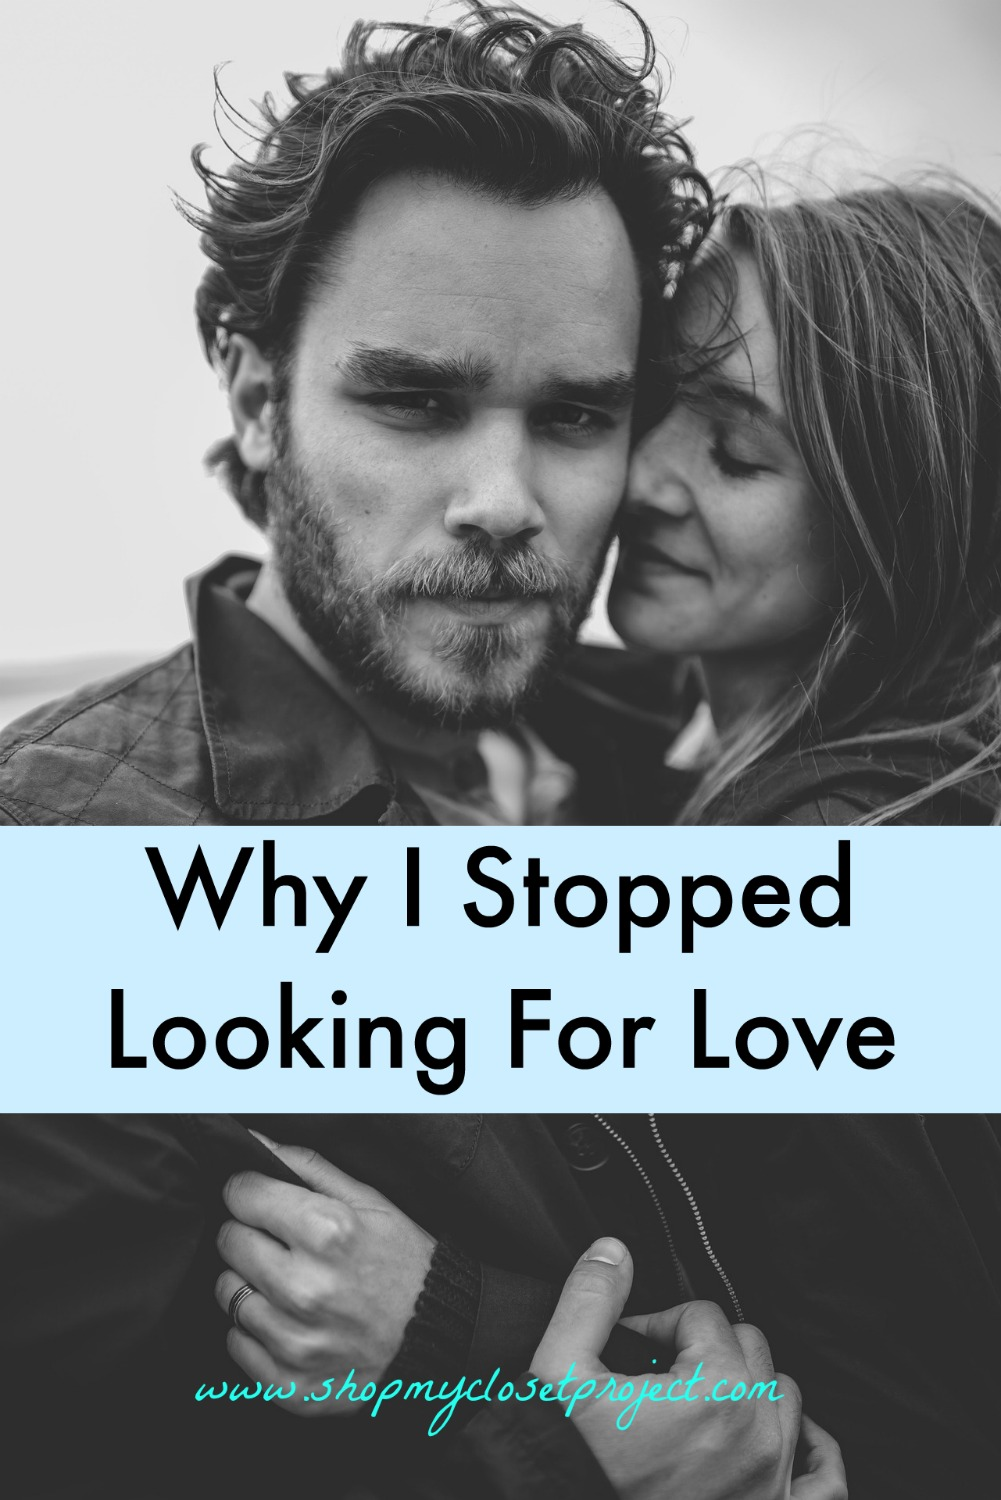 Why I Stopped Looking For Love